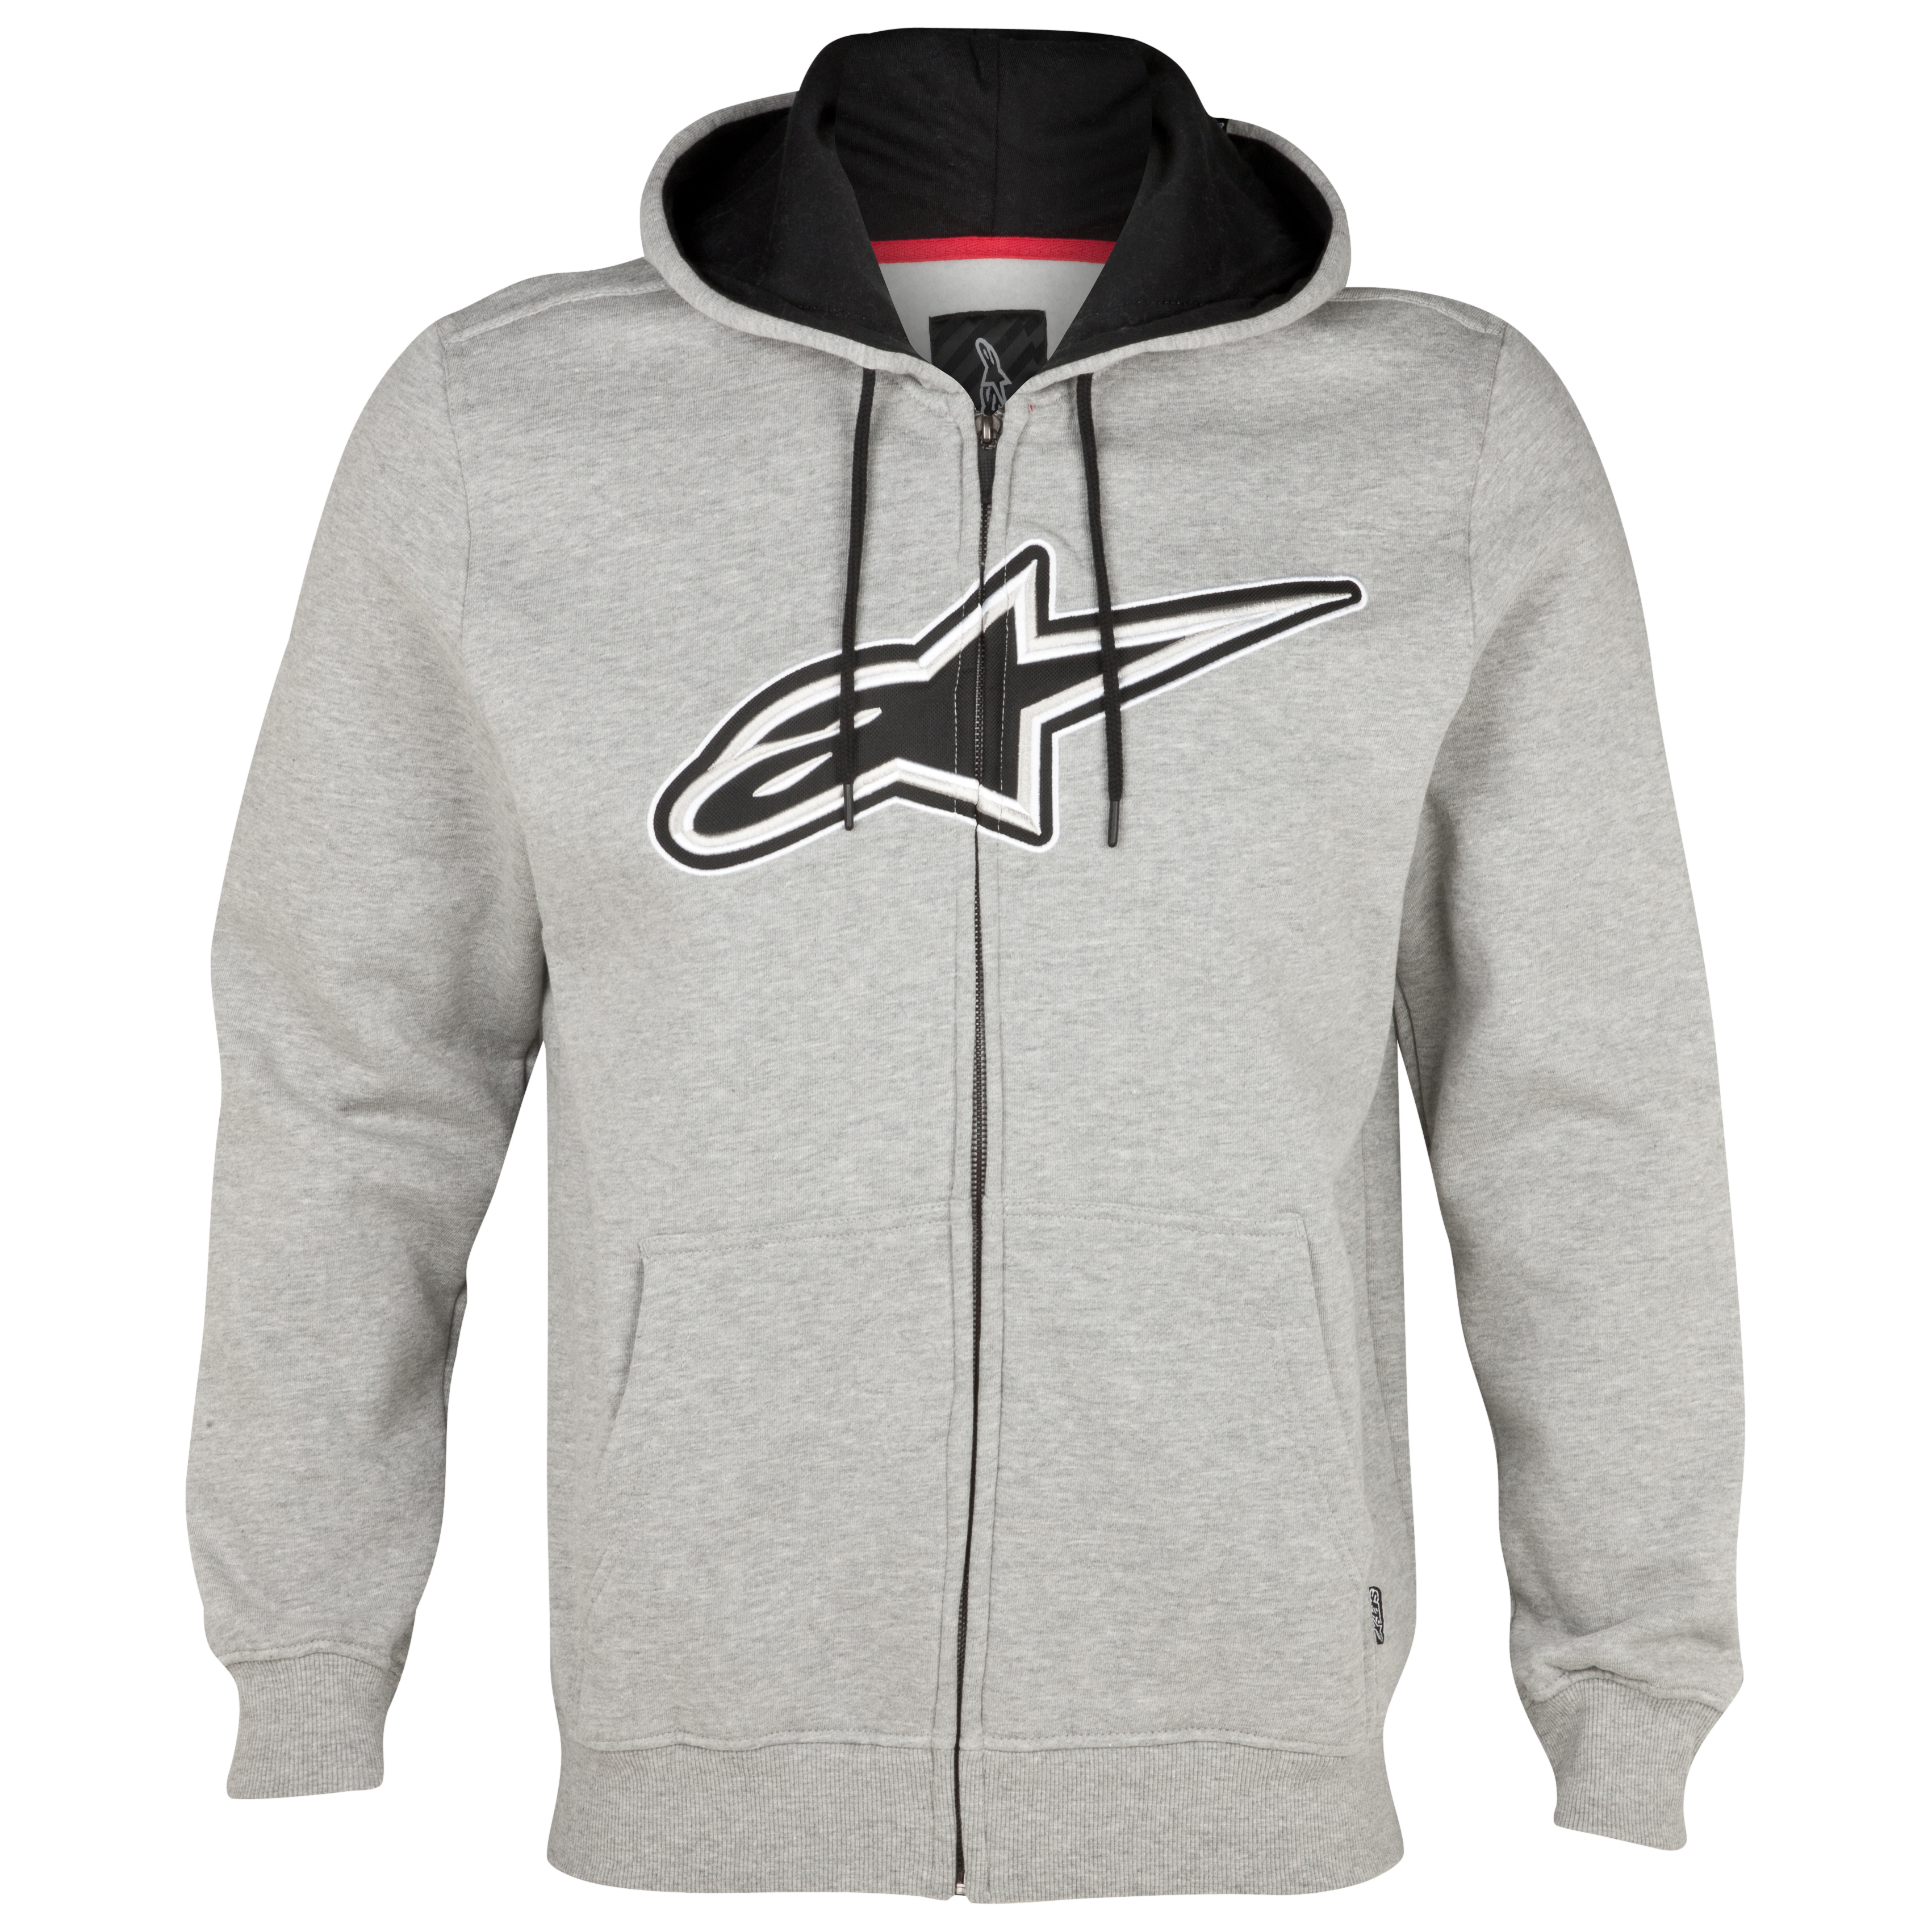 Alpinestars Destroyer Zip Fleece - Heather Grey